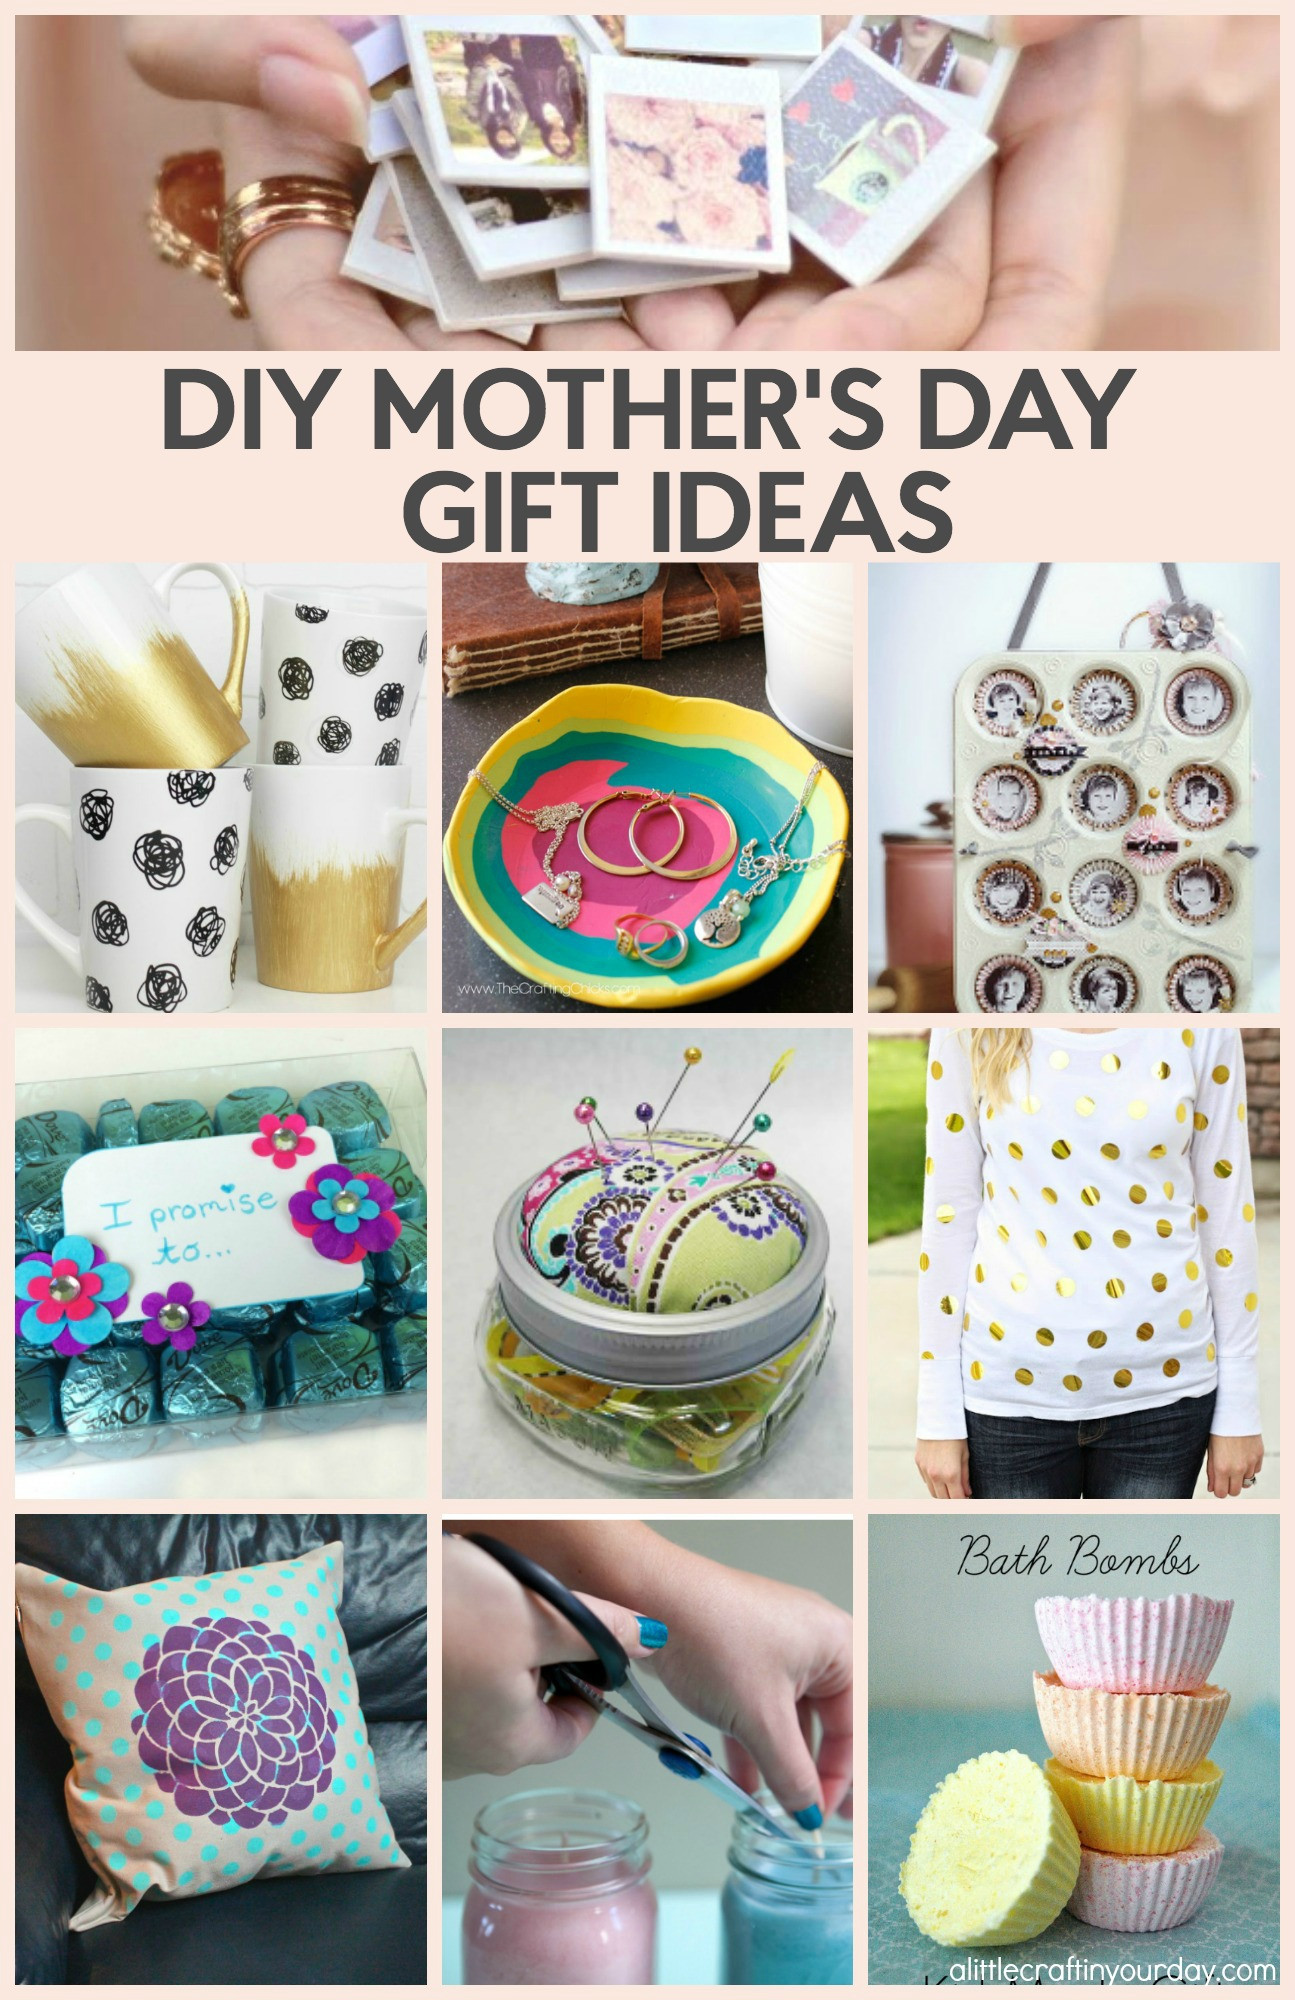 Cute Mothers Day Gift Ideas  15 Cute Mother's Day Gift Ideas She'll Love A Little